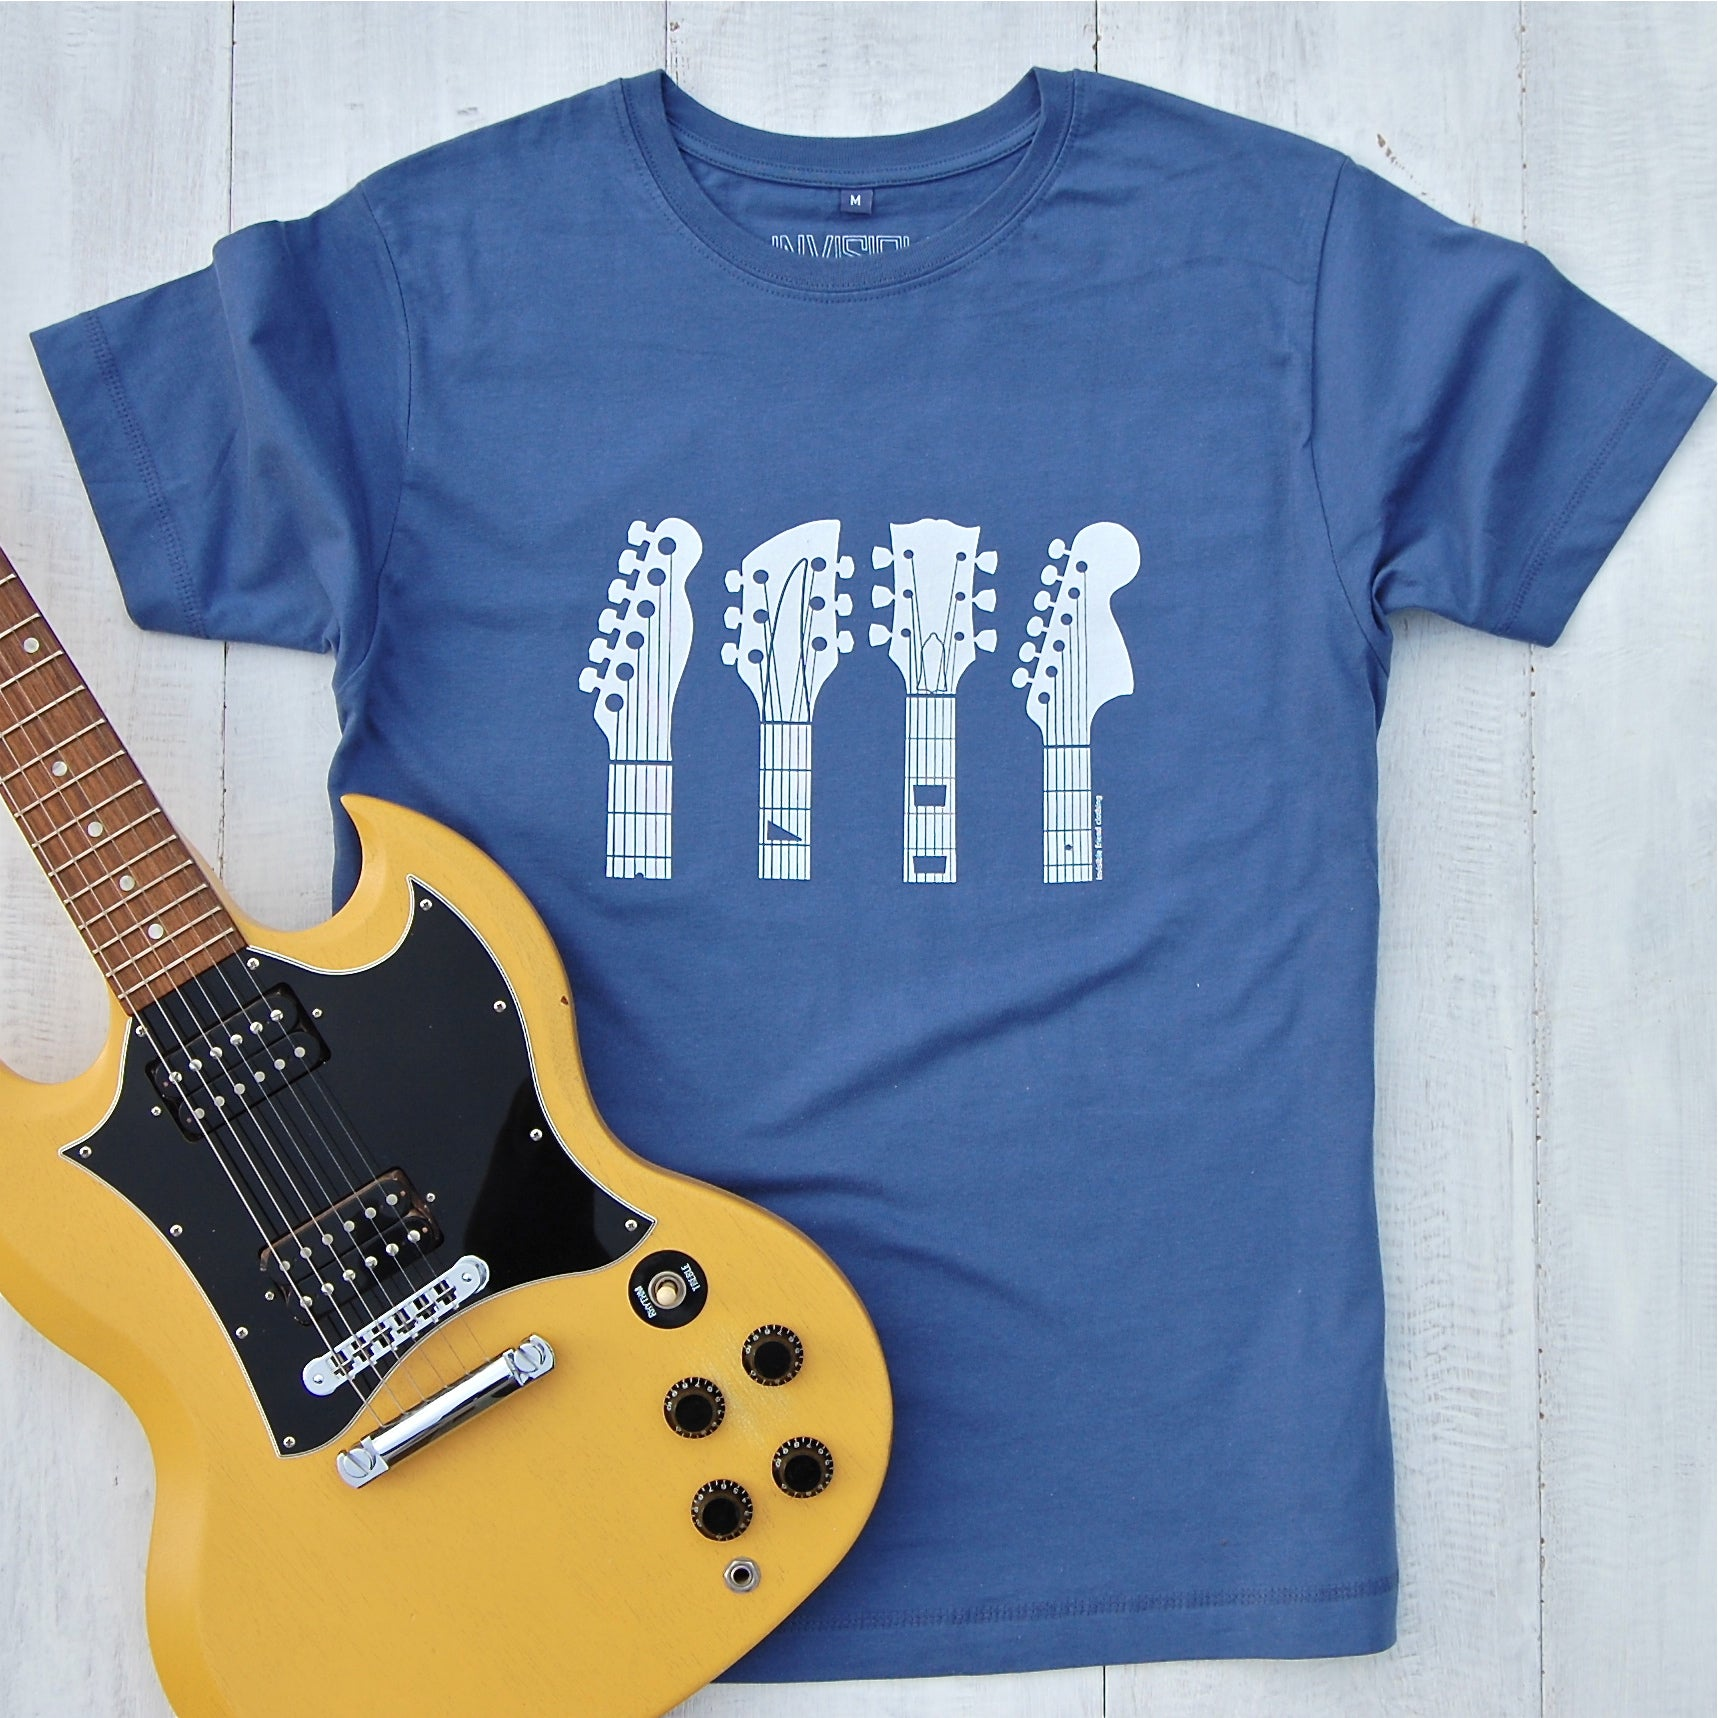 blue t-shirt with guitar headstocks design